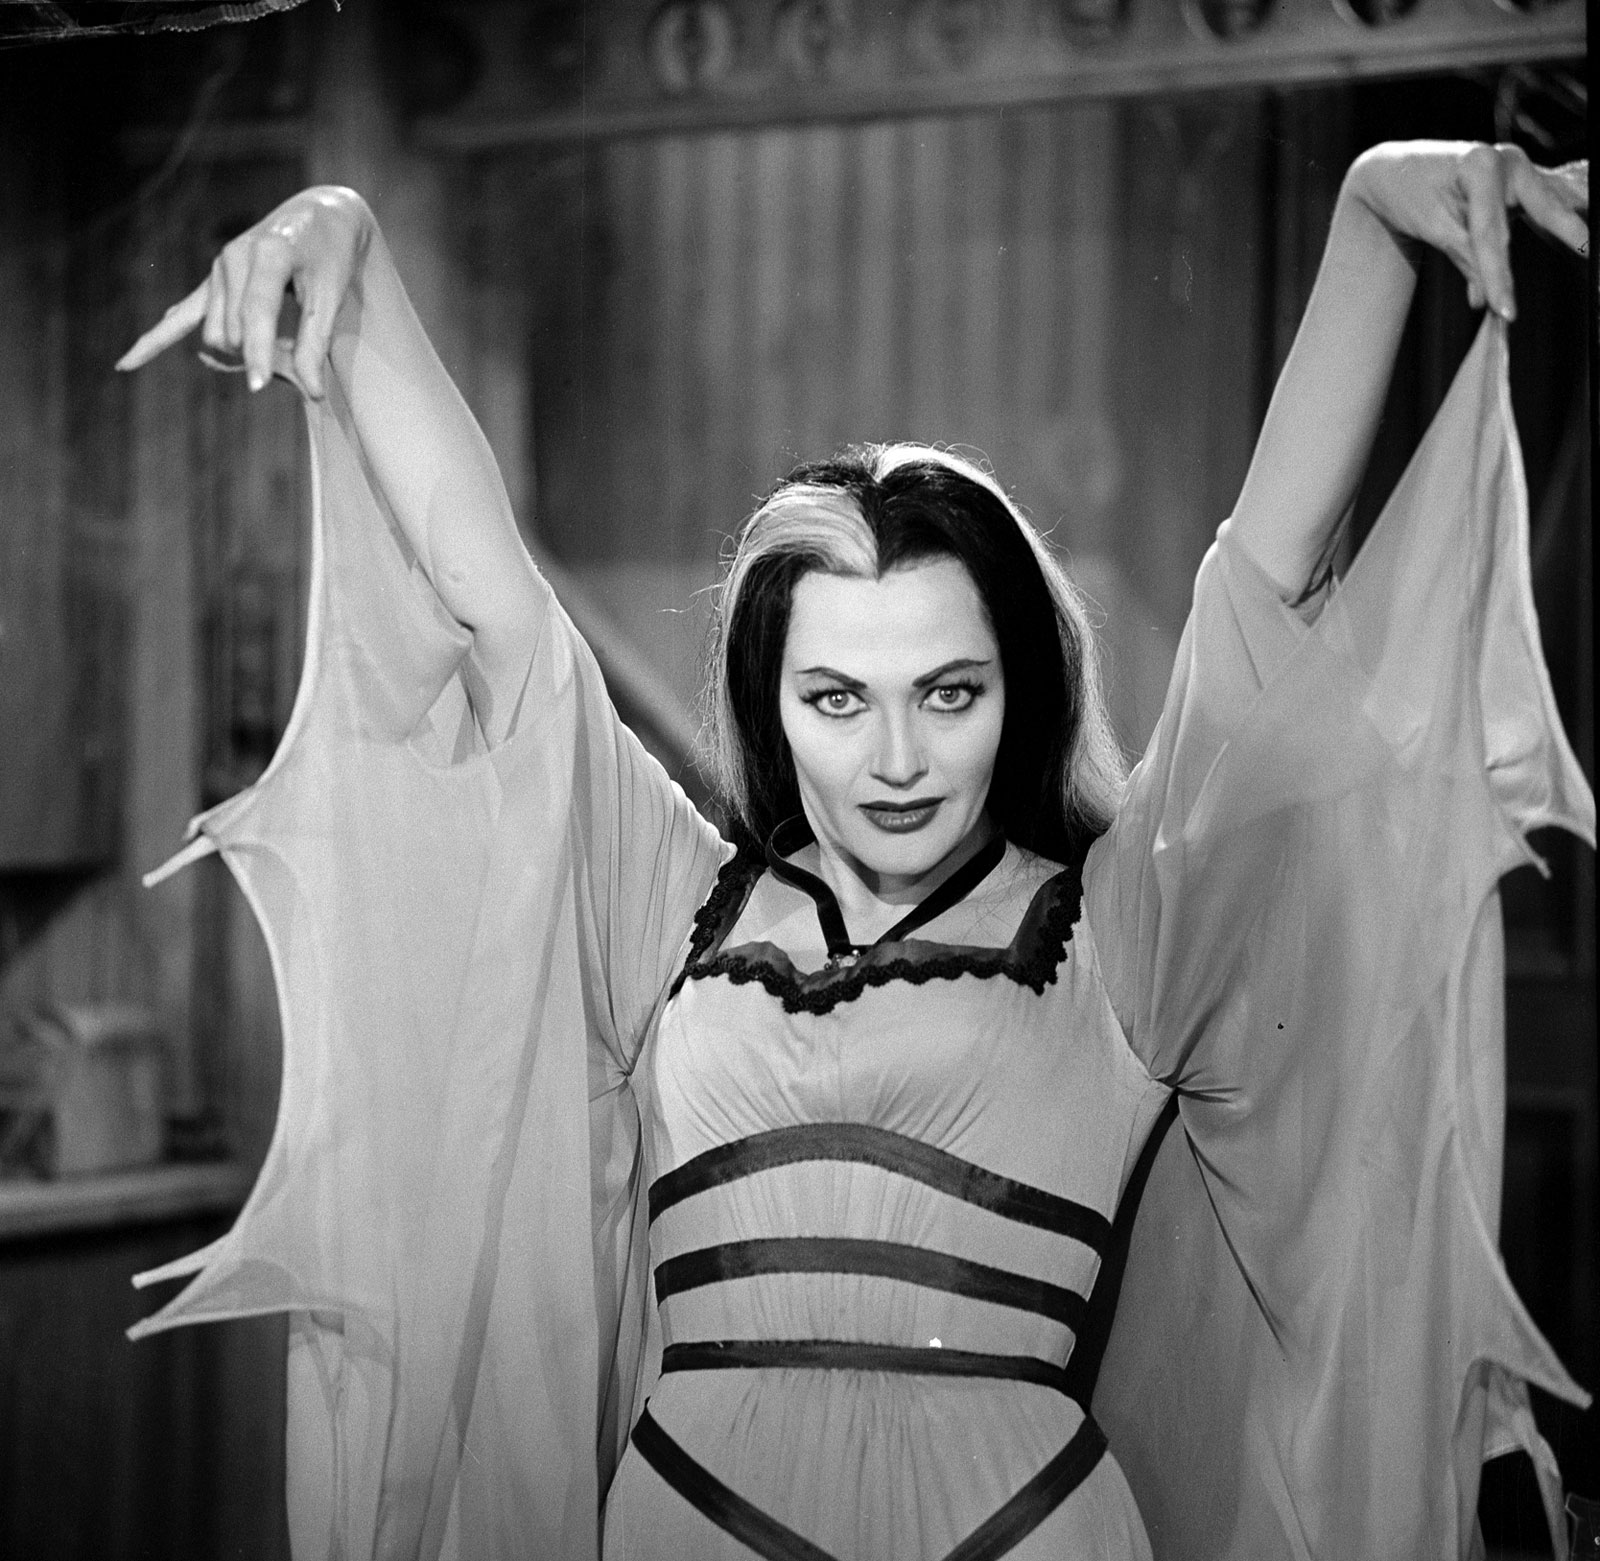 Yvonne decarlo munsters nude